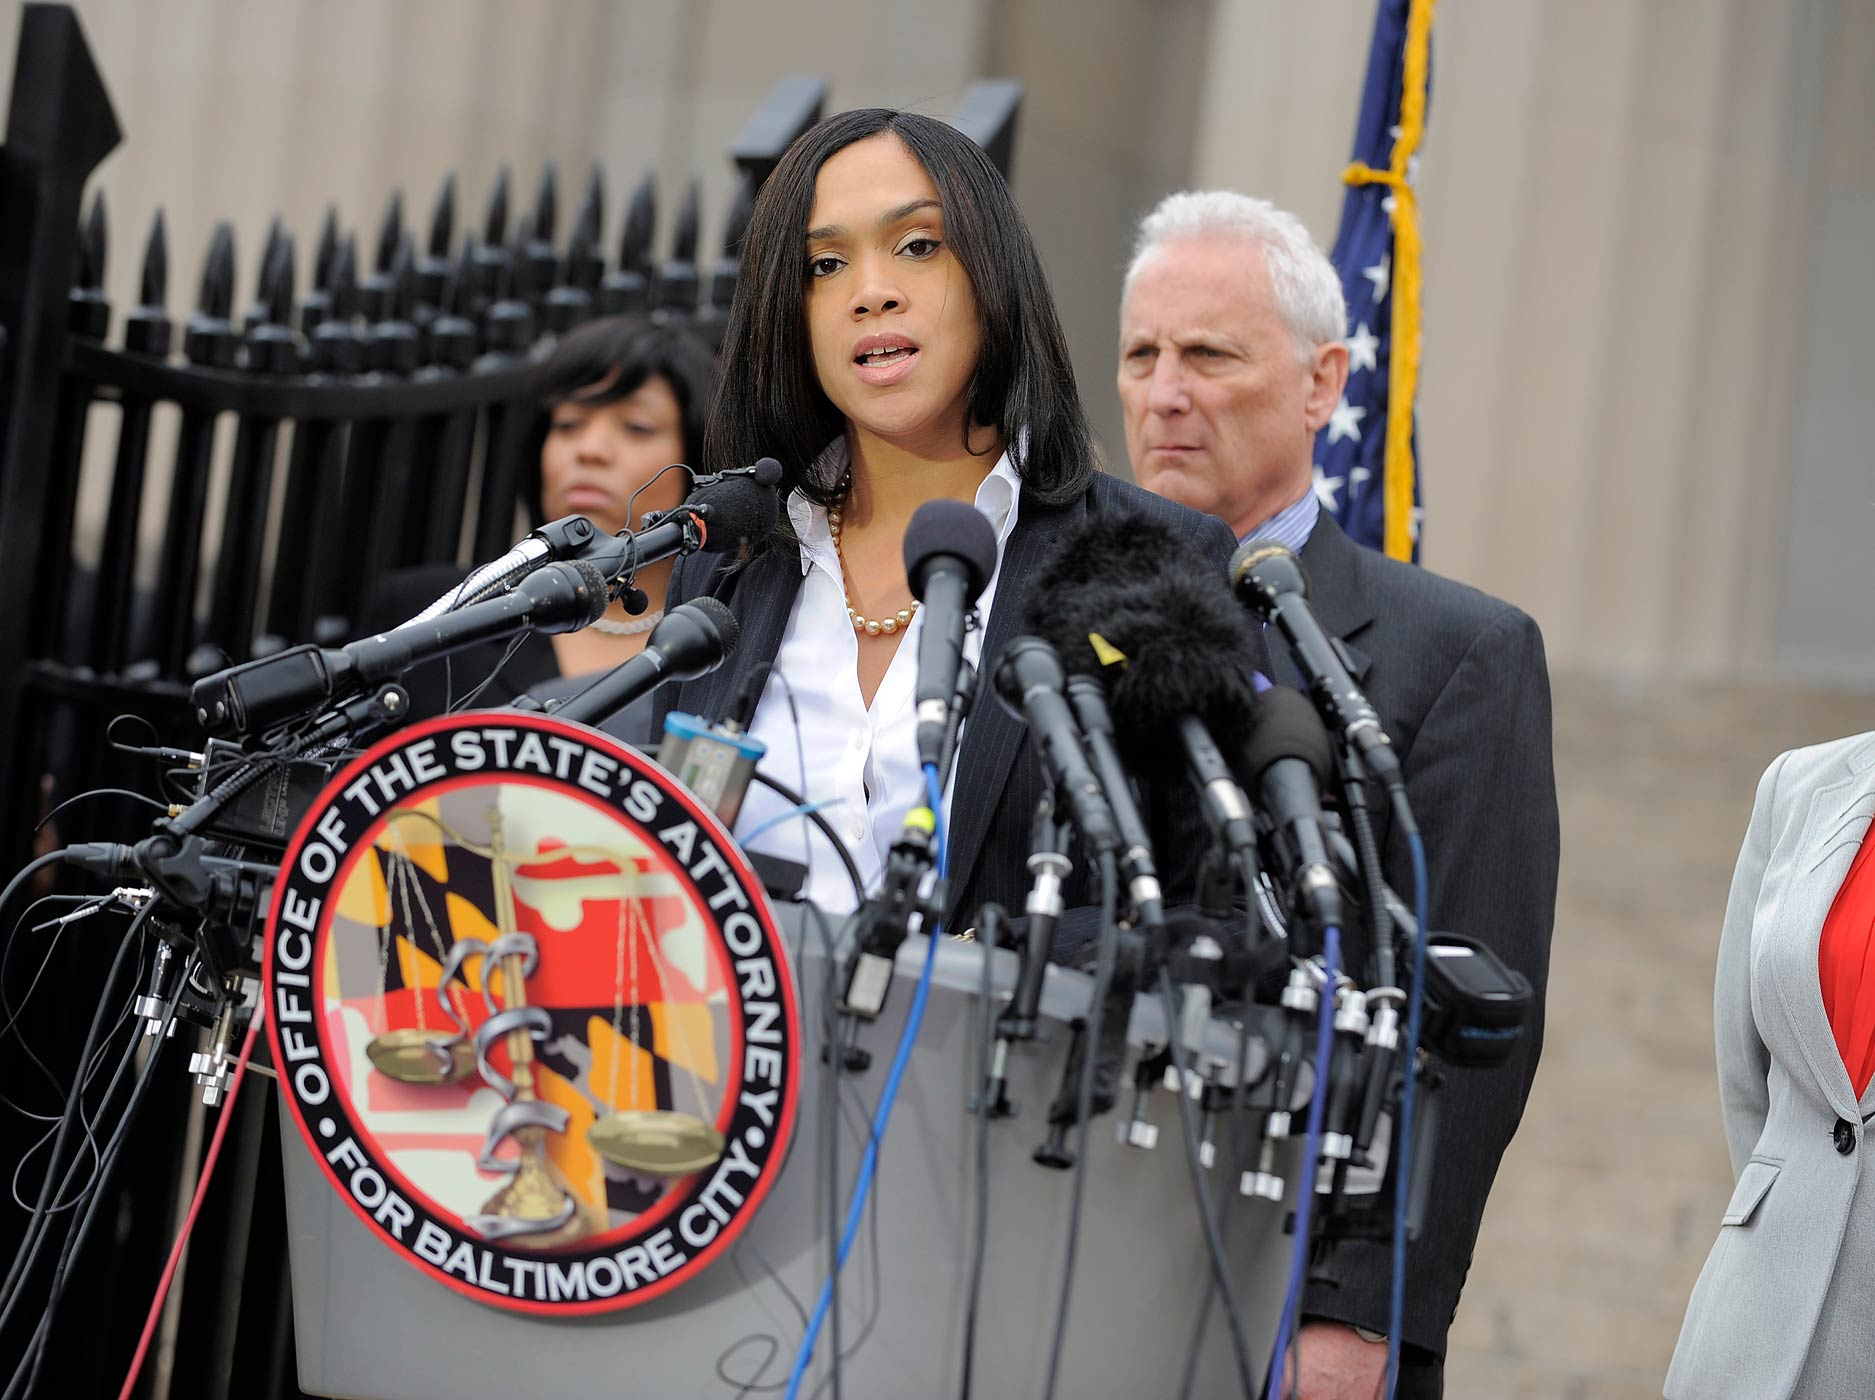 Baltimore State Attorney Marilyn Mosby answers questions at a press conference outside the War Memorial Building on May 1, 2015, talking about the arrests of police officers involved in the death of Freddie Gray in Baltimore, Md.